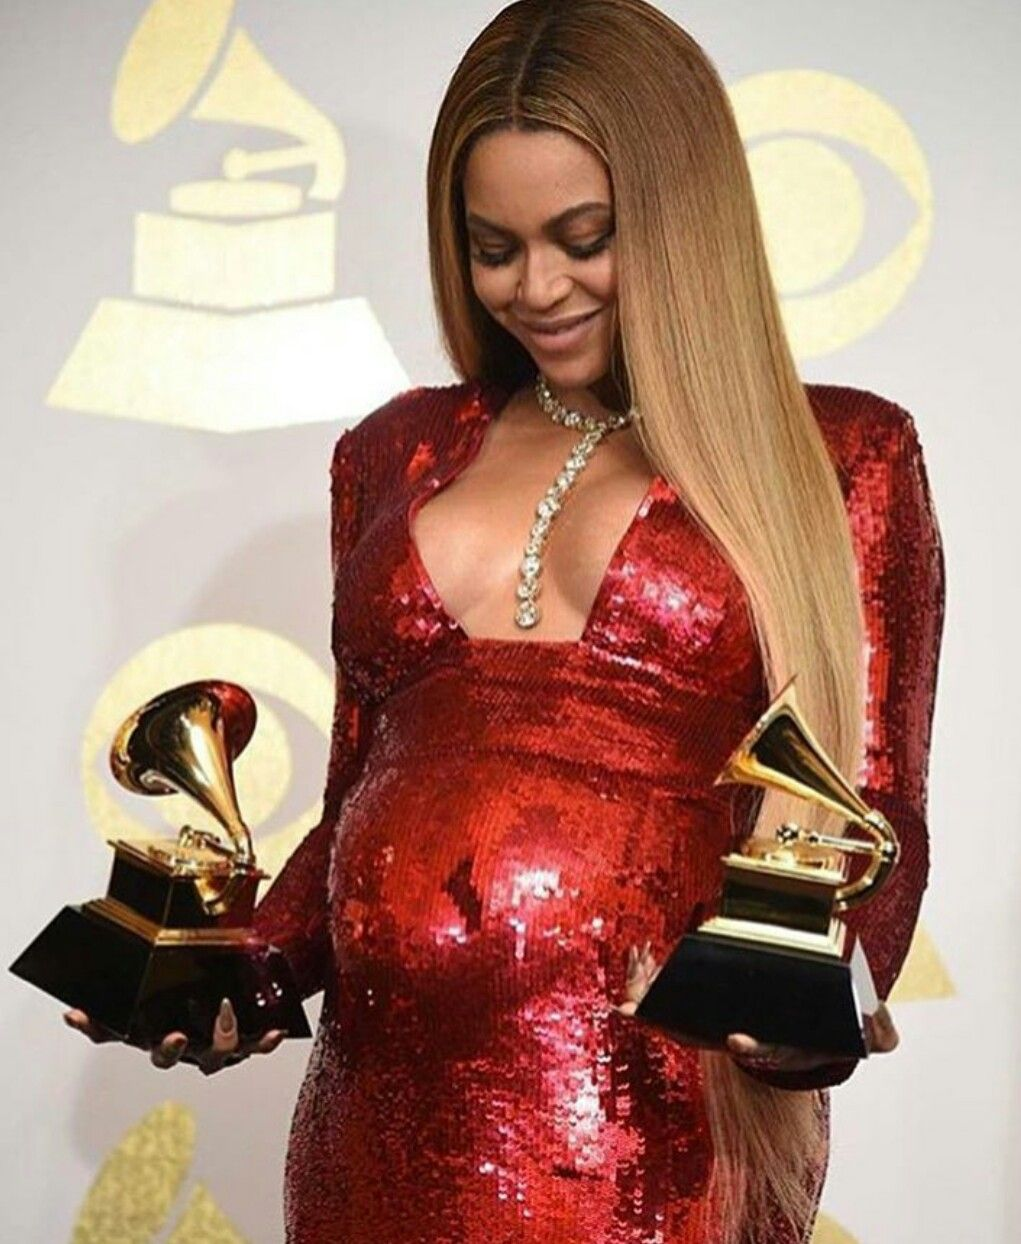 Beyonce At The 59th Annual Grammy Awards Here She Is Holding Grammys For Best Music Video 2017 Formation Best Urban Cont Beyonce Beyonce Pregnant Celebs